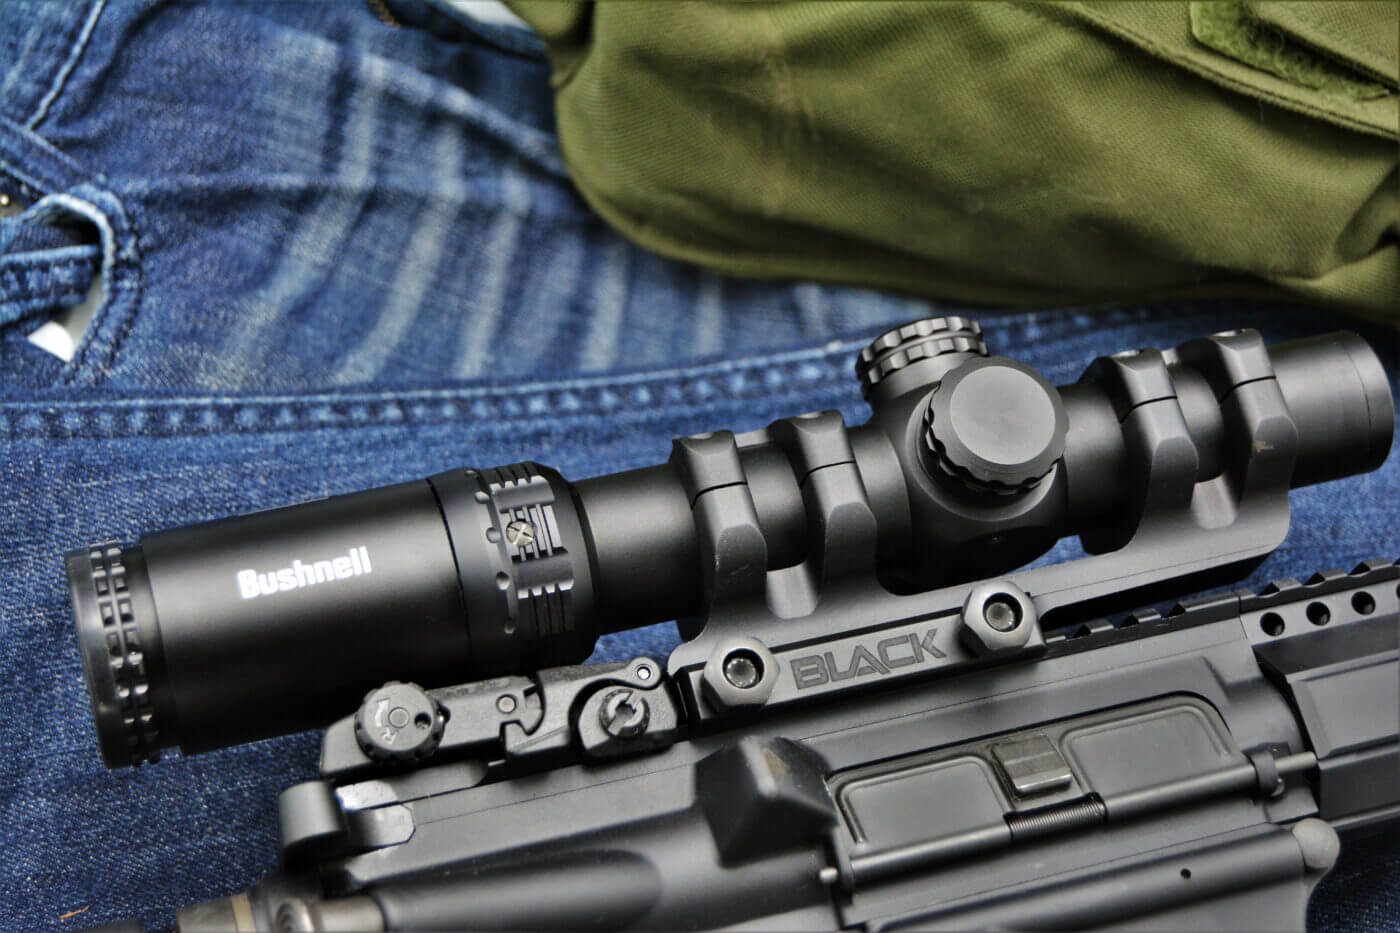 SAINT with Bushnell scope